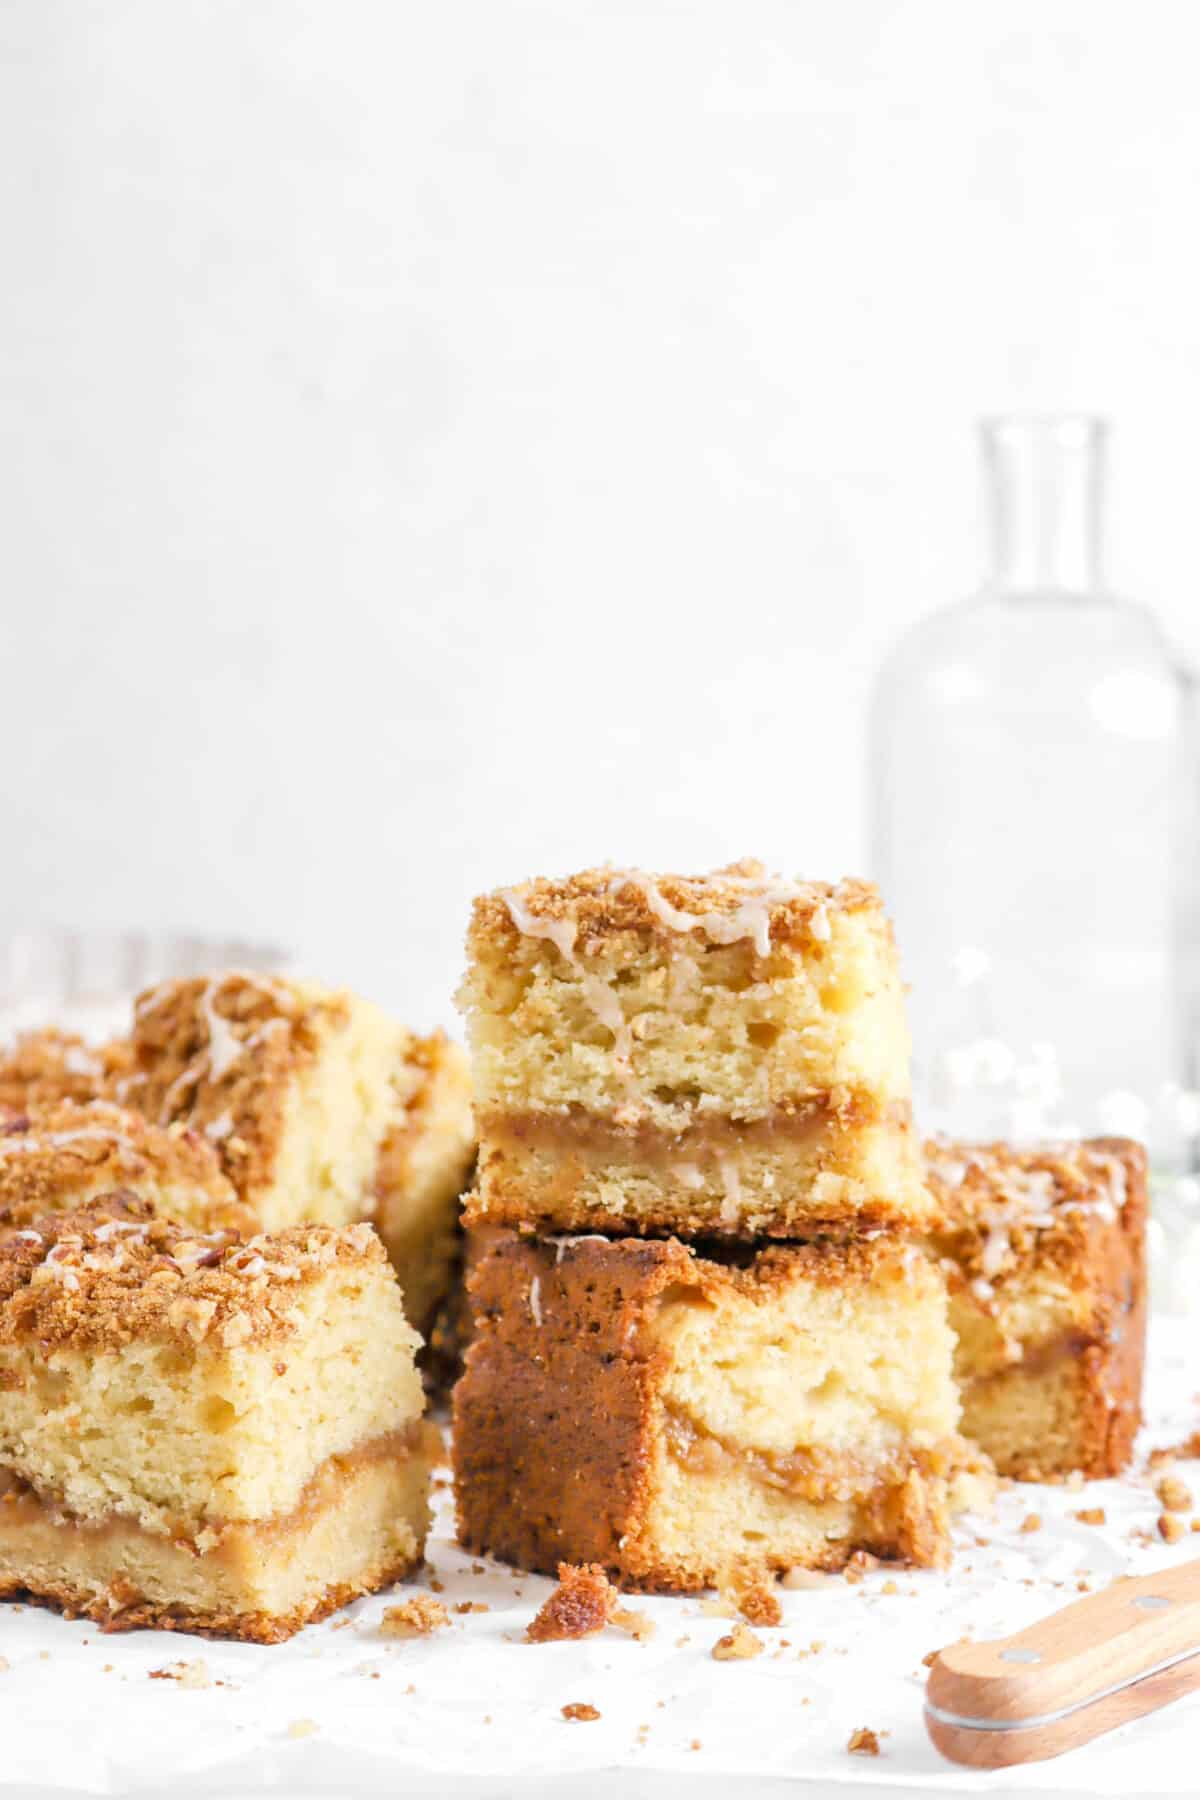 coffee cake slices on parchment paper with glass jar behind